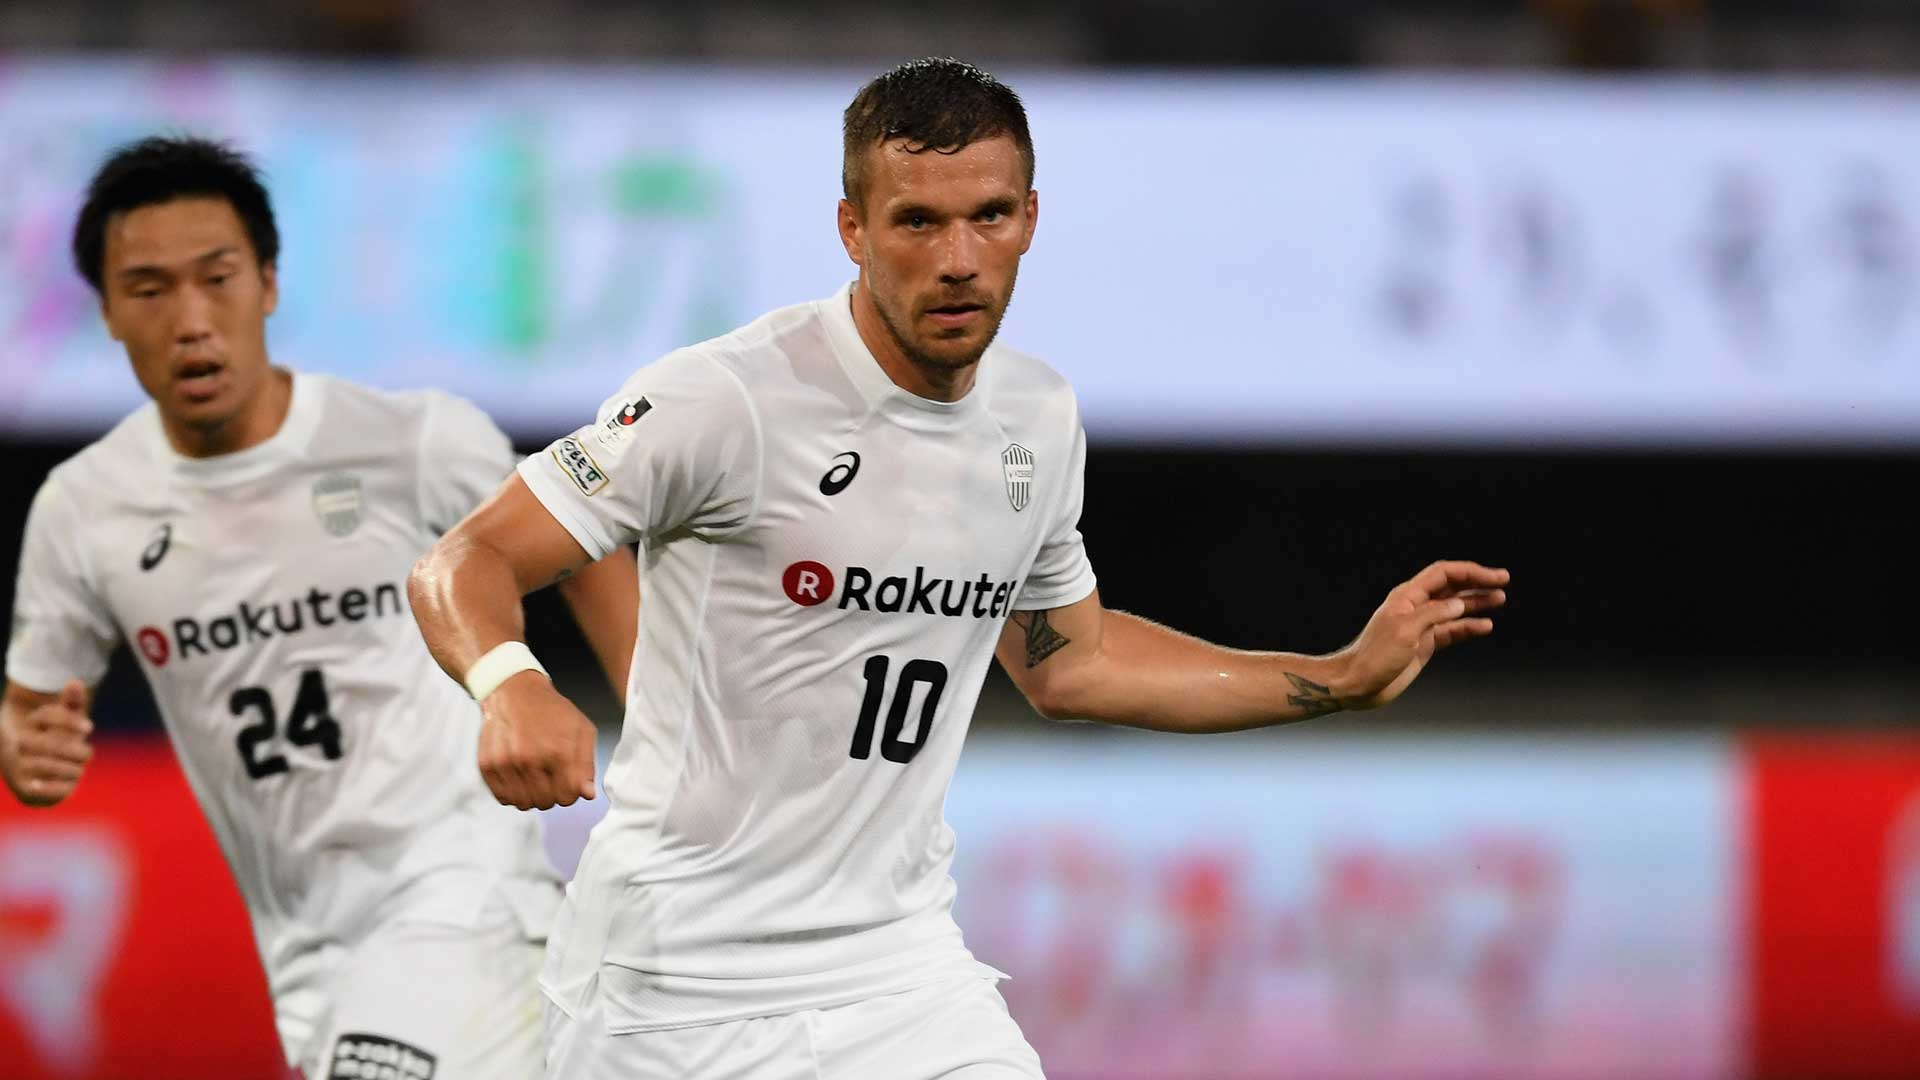 Traumeinstand für Podolski in Japan